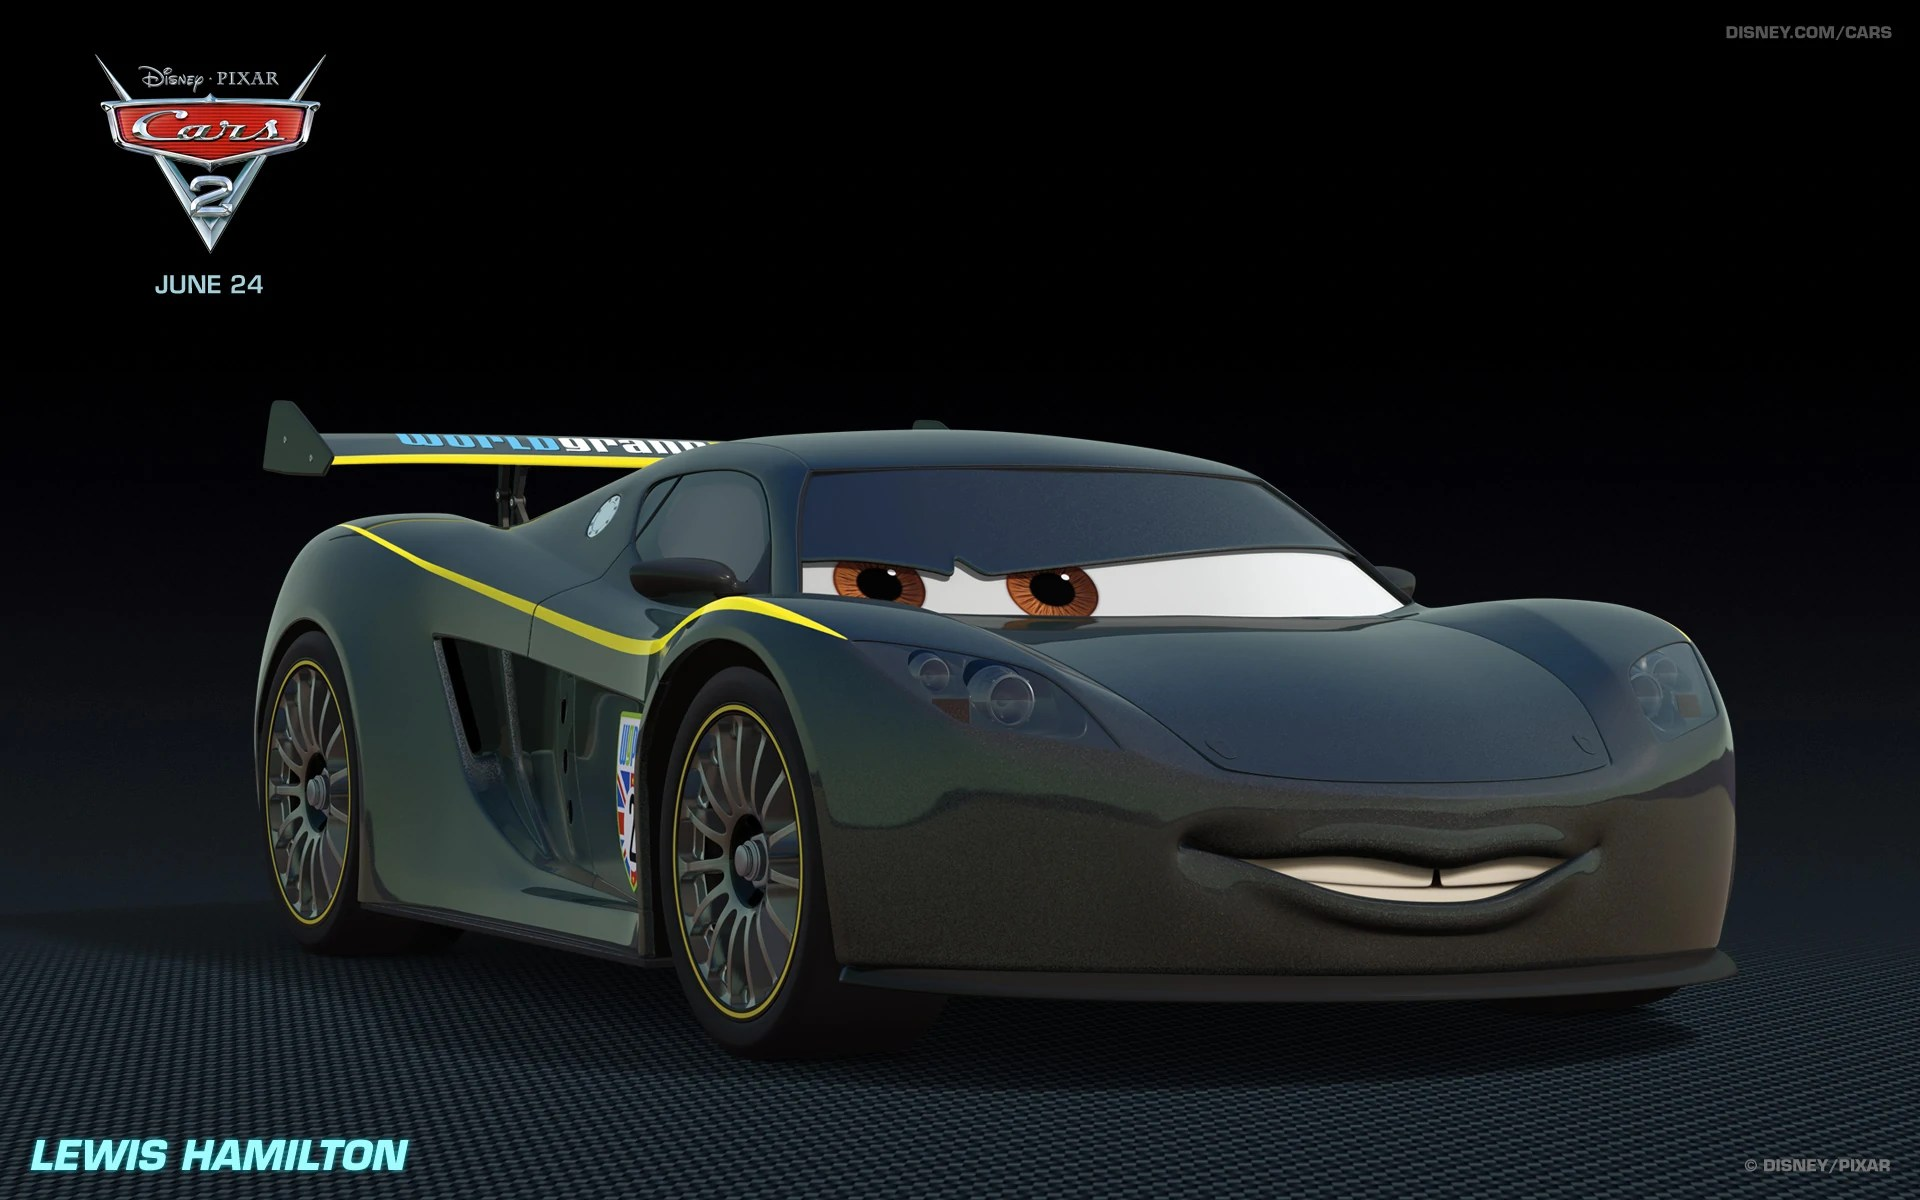 Cars Pixar Lewis Hamilton Lewis Hamilton Car Pixar Wiki Fandom Powered By Wikia